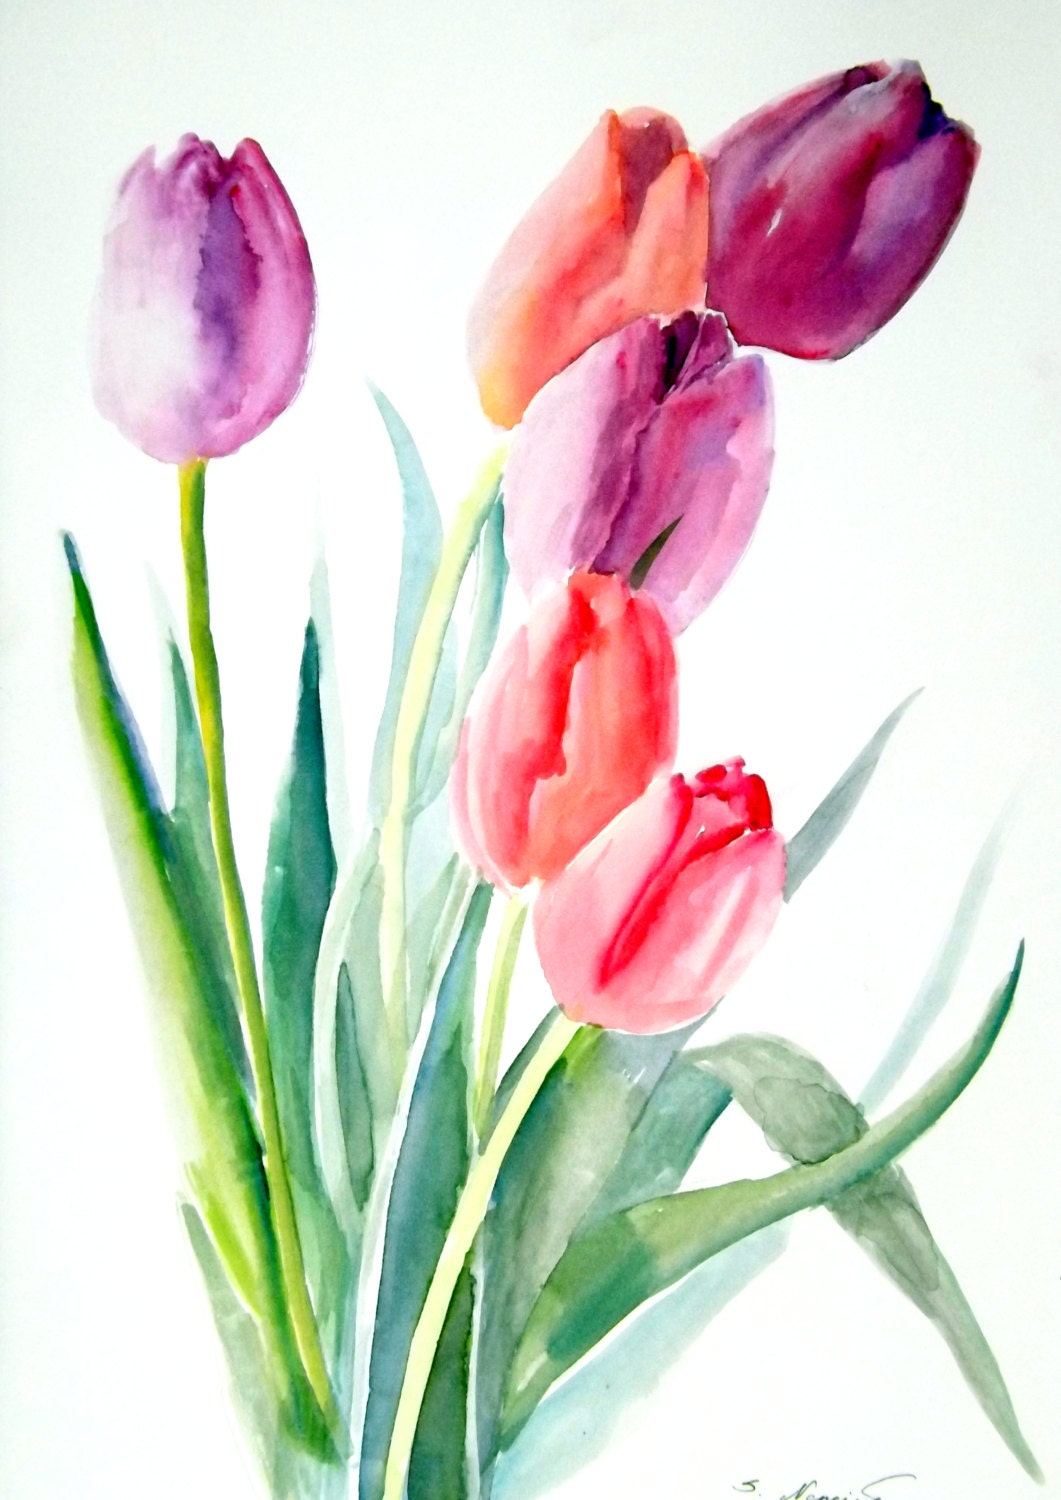 tulips original watercolor painting 12 x 9